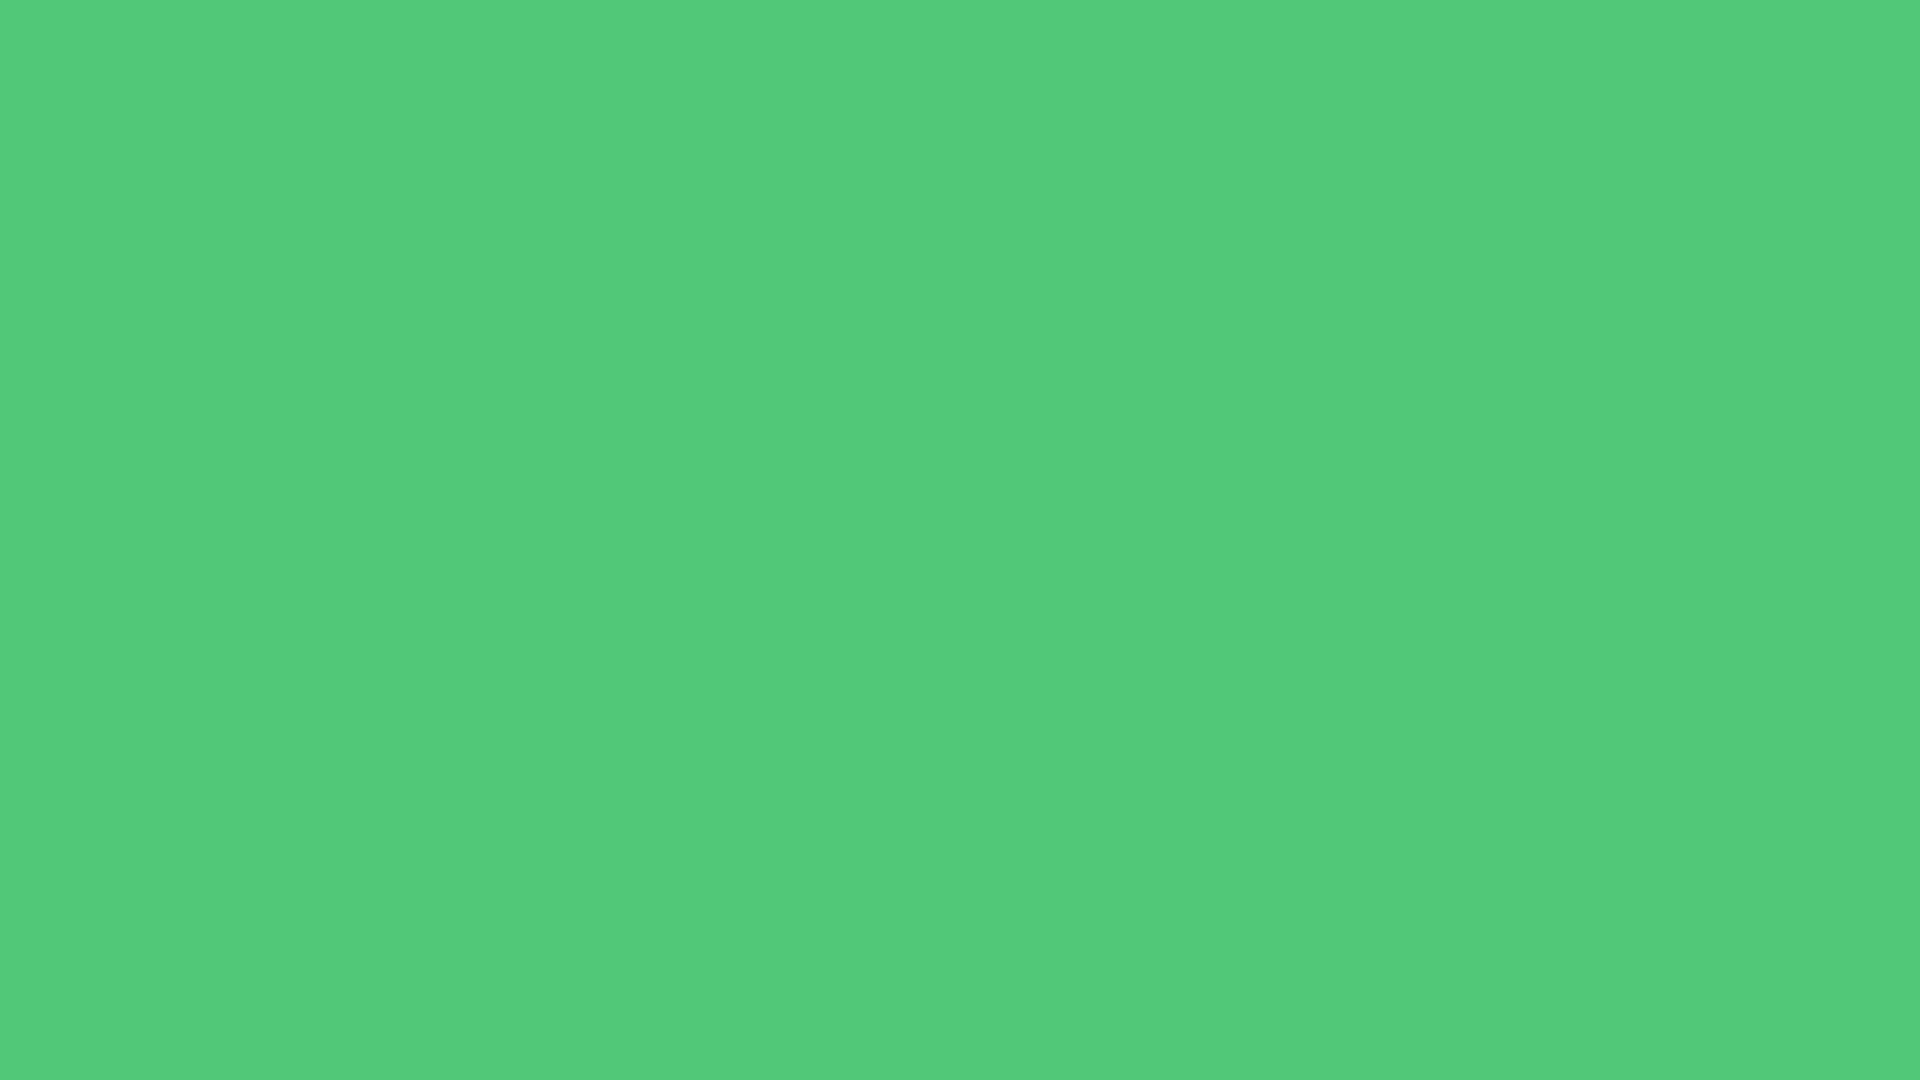 1920x1080 Emerald Solid Color Background